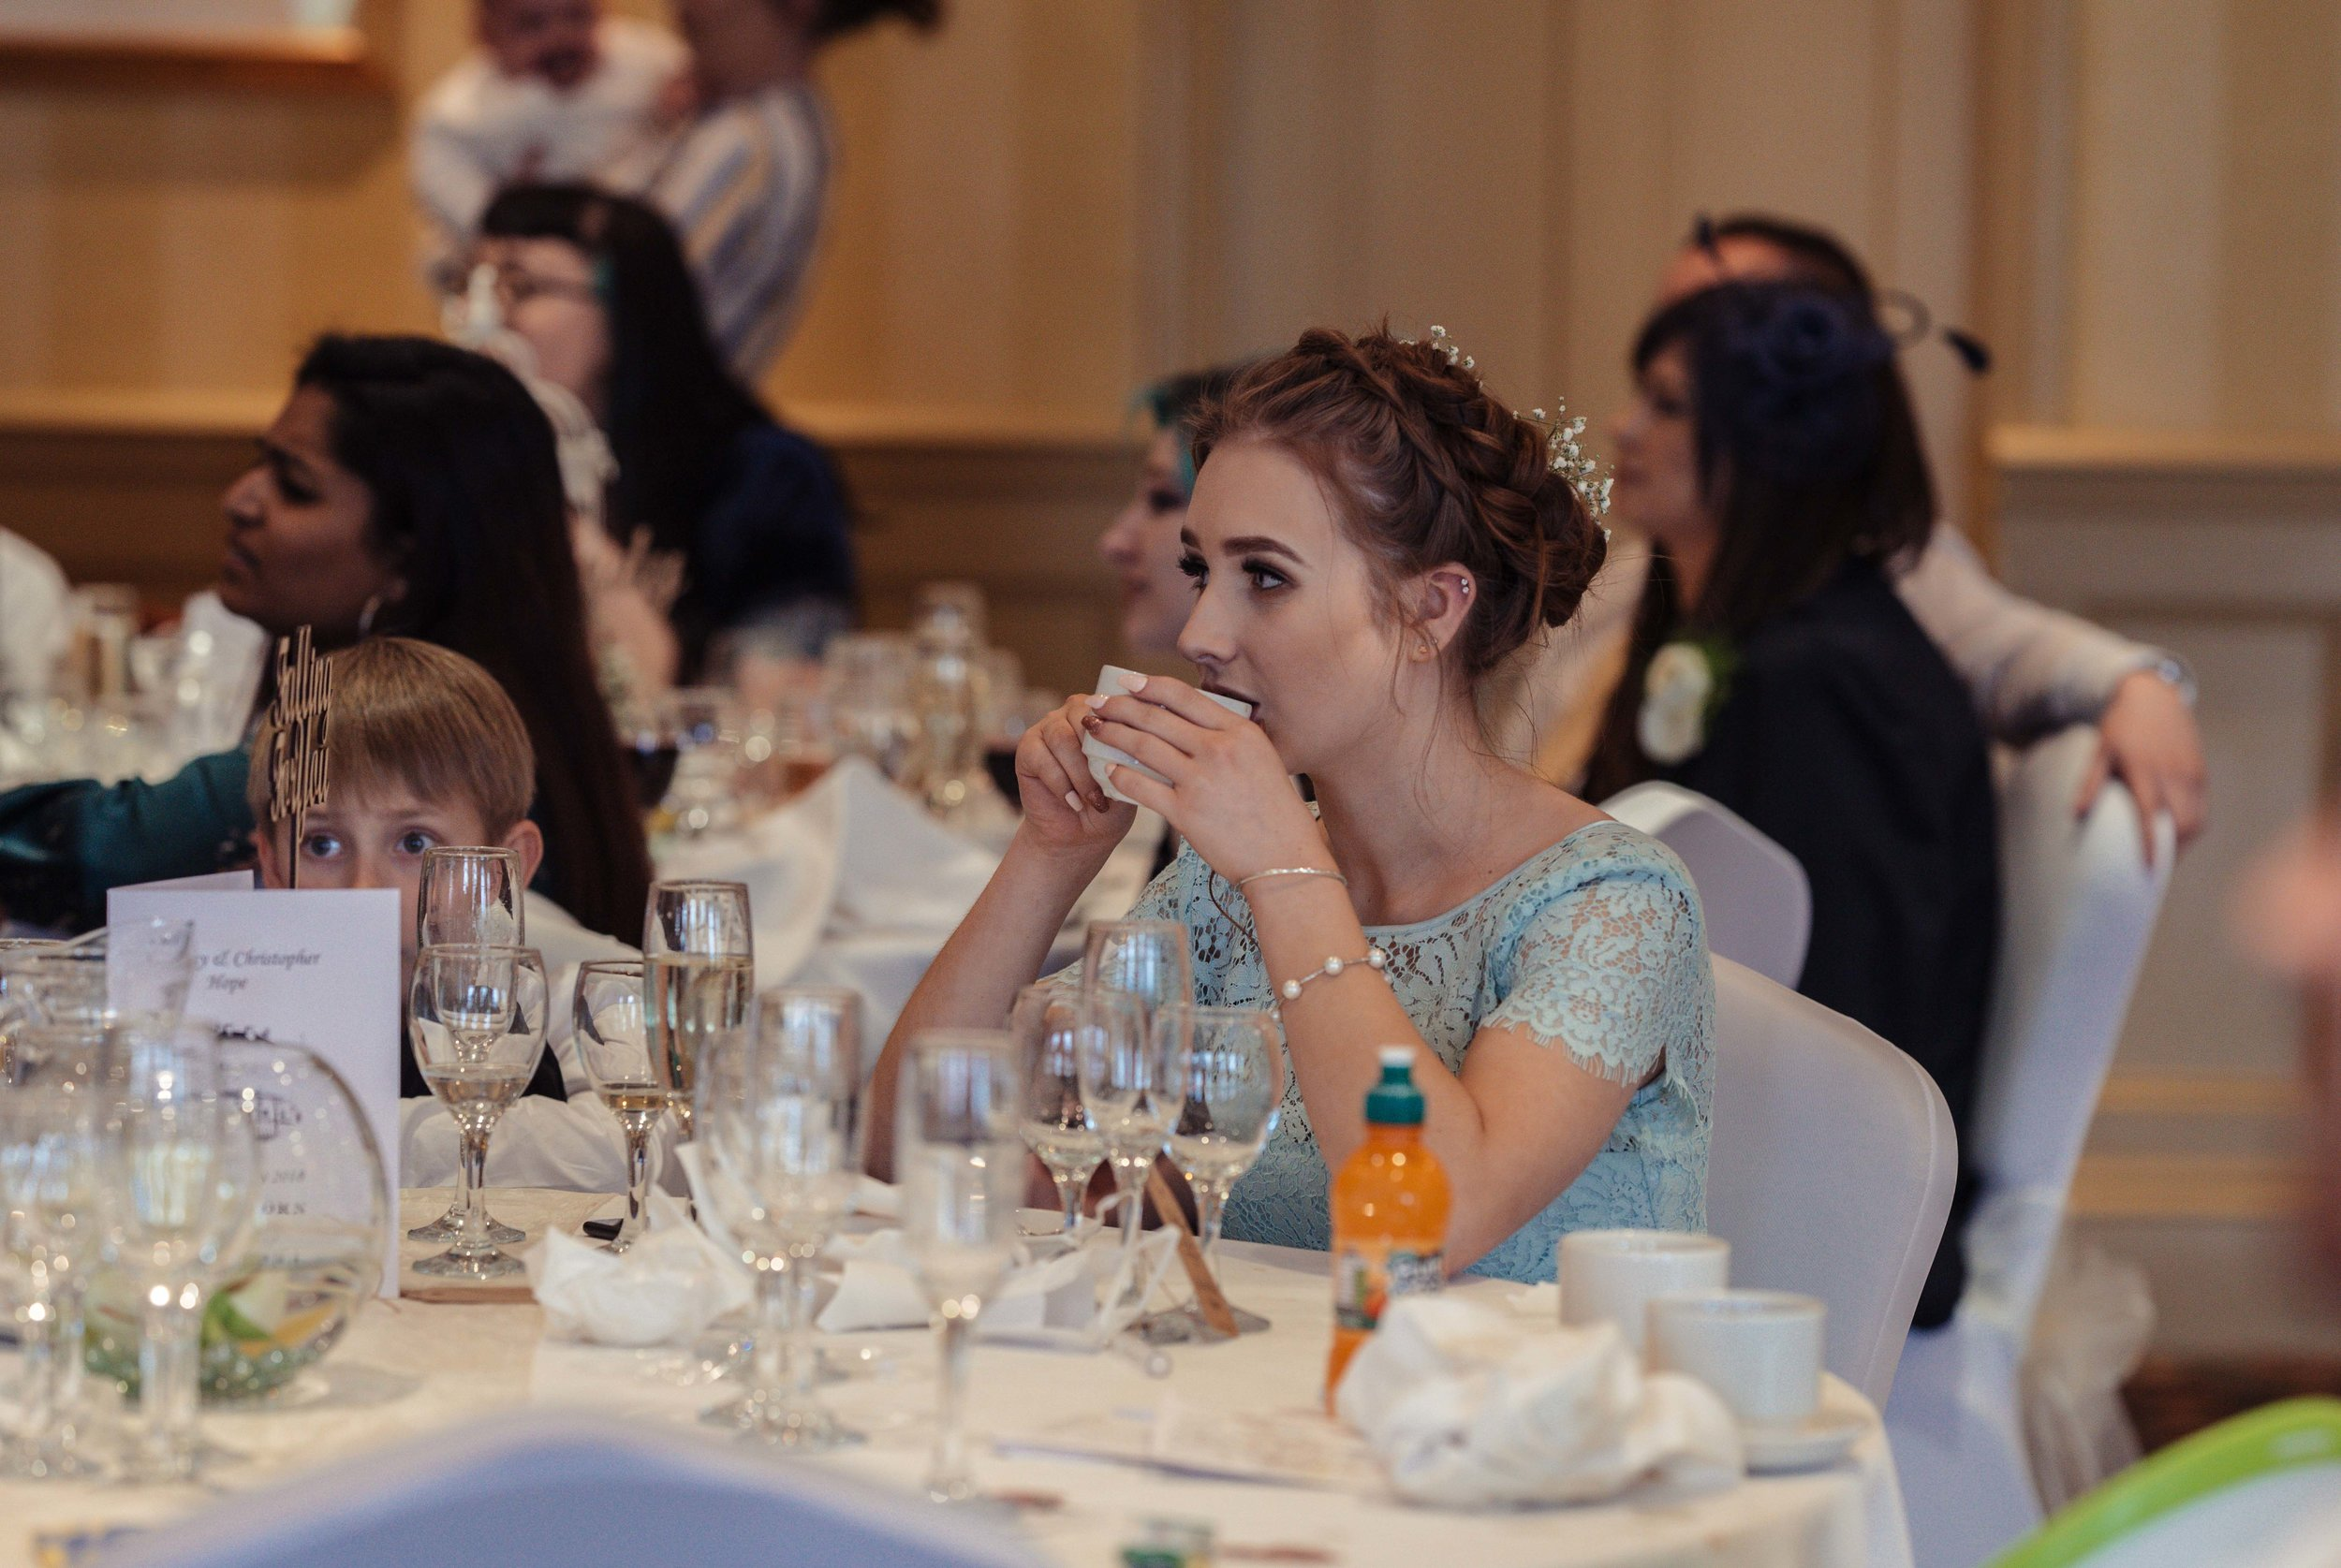 A bridesmaid listens to the speeches